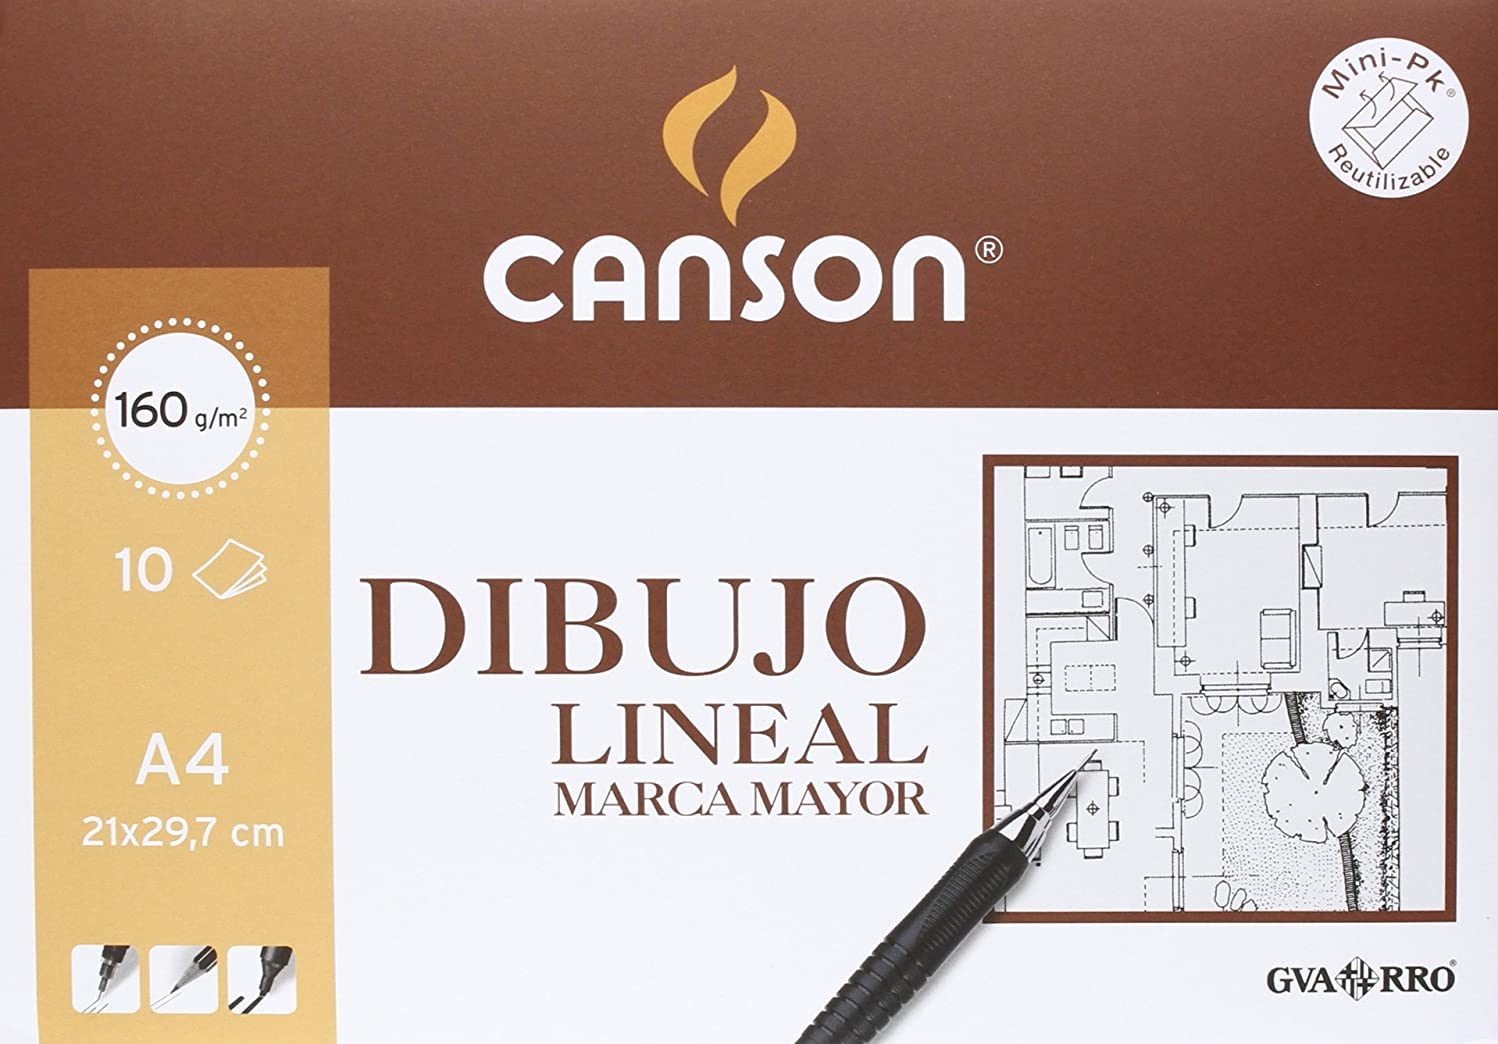 Canson 409784 Marca Mayor Paper, 10 Sheets